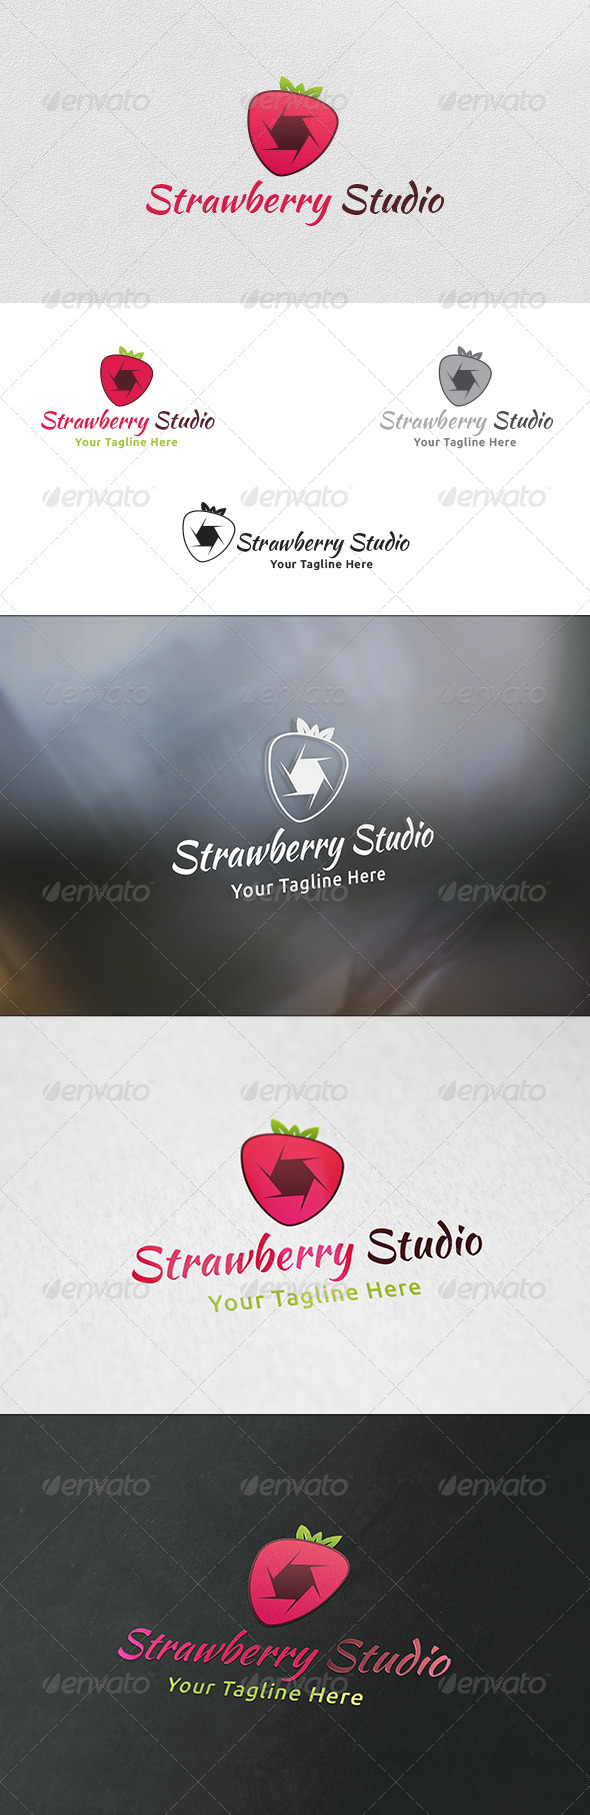 GraphicRiver Strawberry Studio Logo Template 6090019